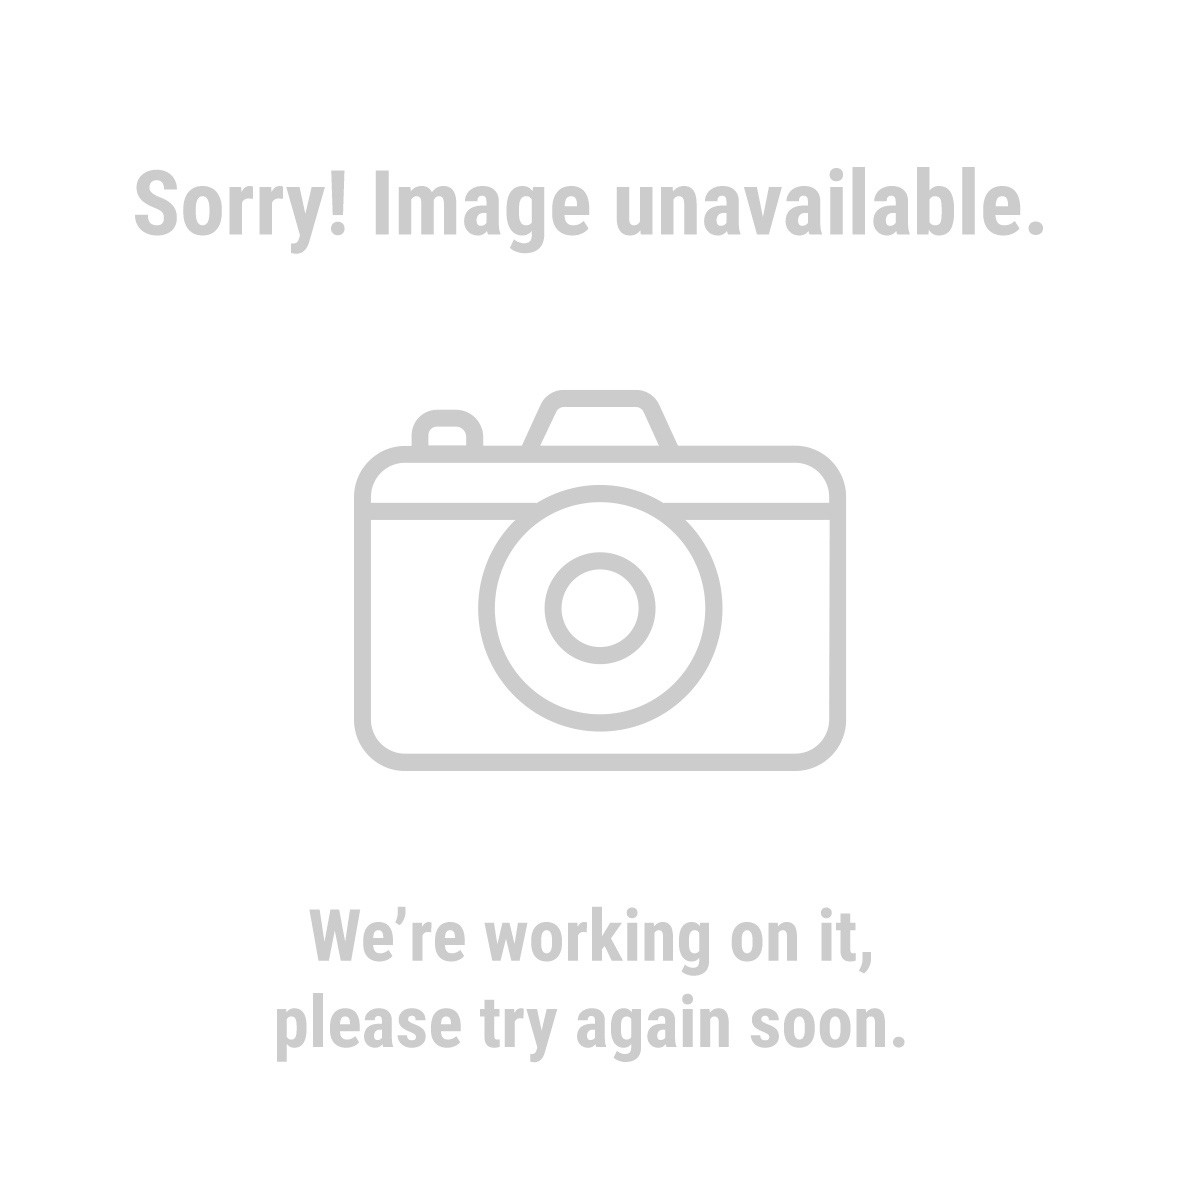 Chicago Welding 67833 4 ft. x 6 ft. Fiberglass Welding Blanket